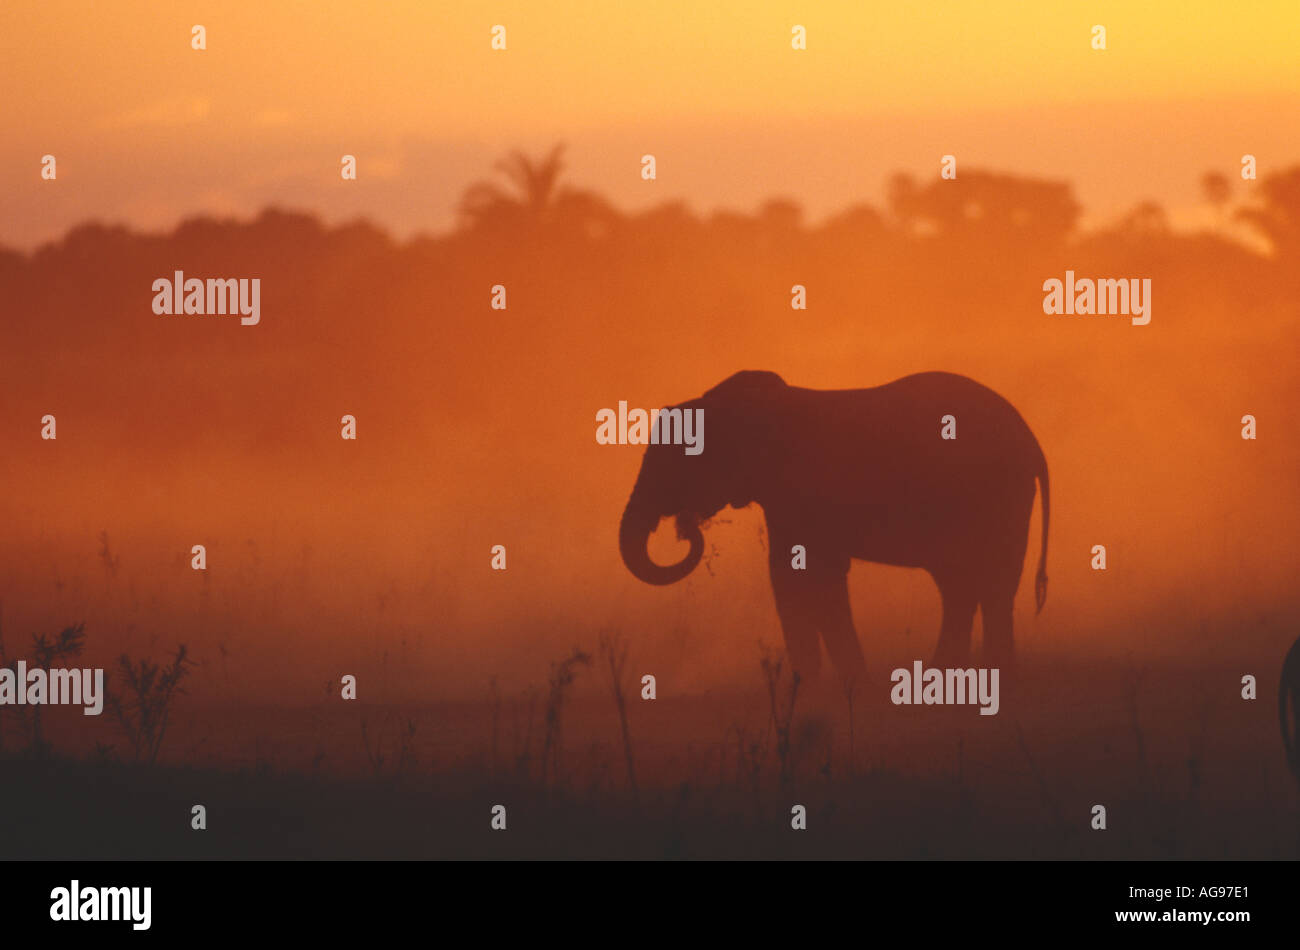 Elephant kicking up dust in Botswana - Stock Image